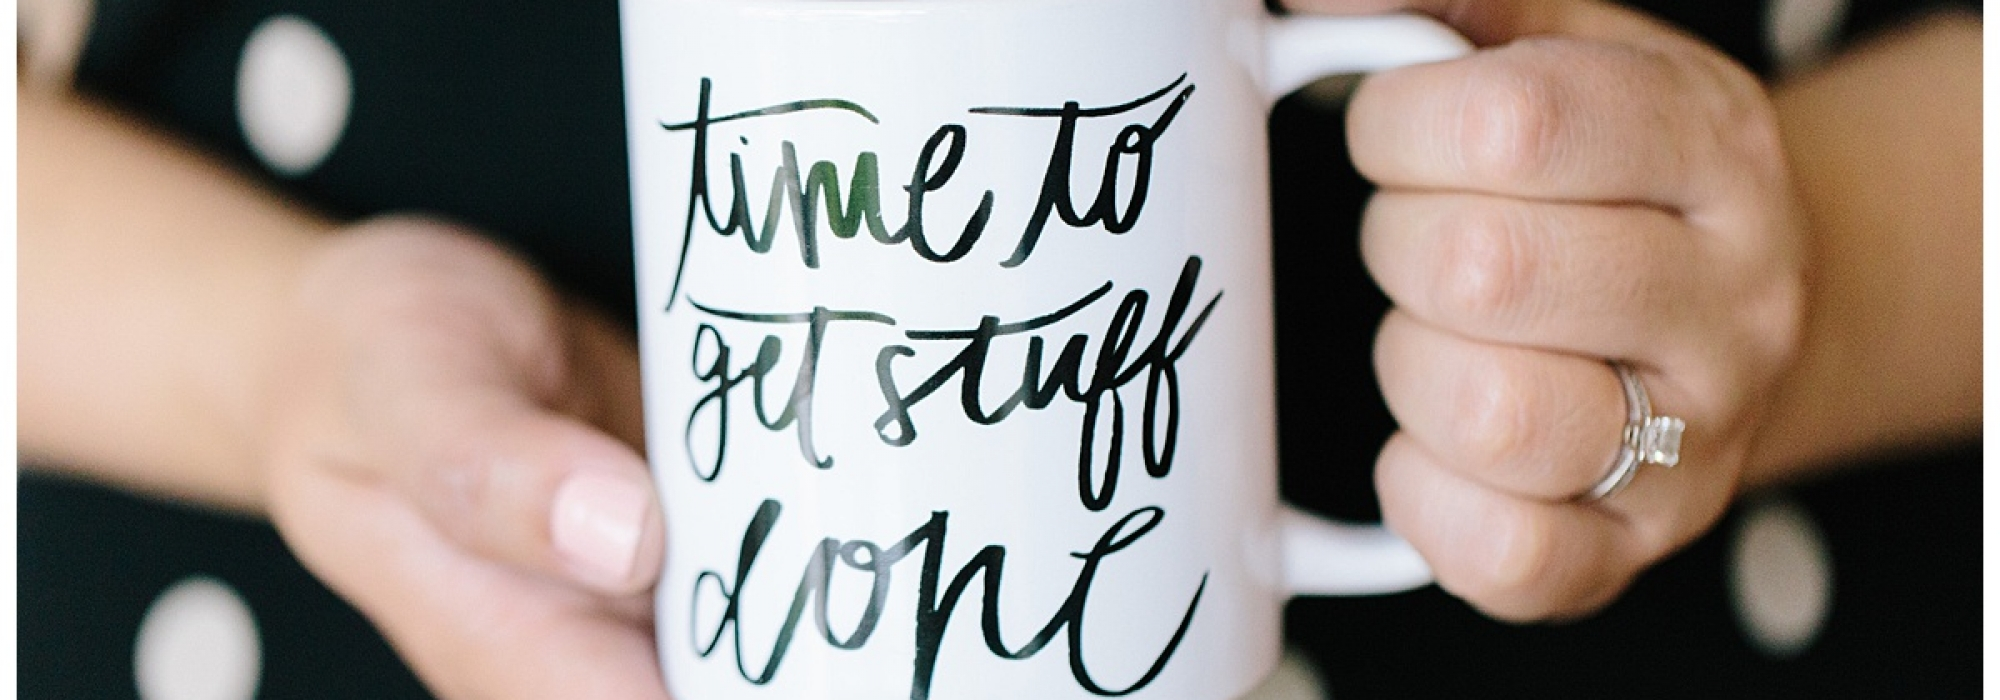 "Wedding planner coffee mug with calligraphy script that says ""time to get stuff done"""